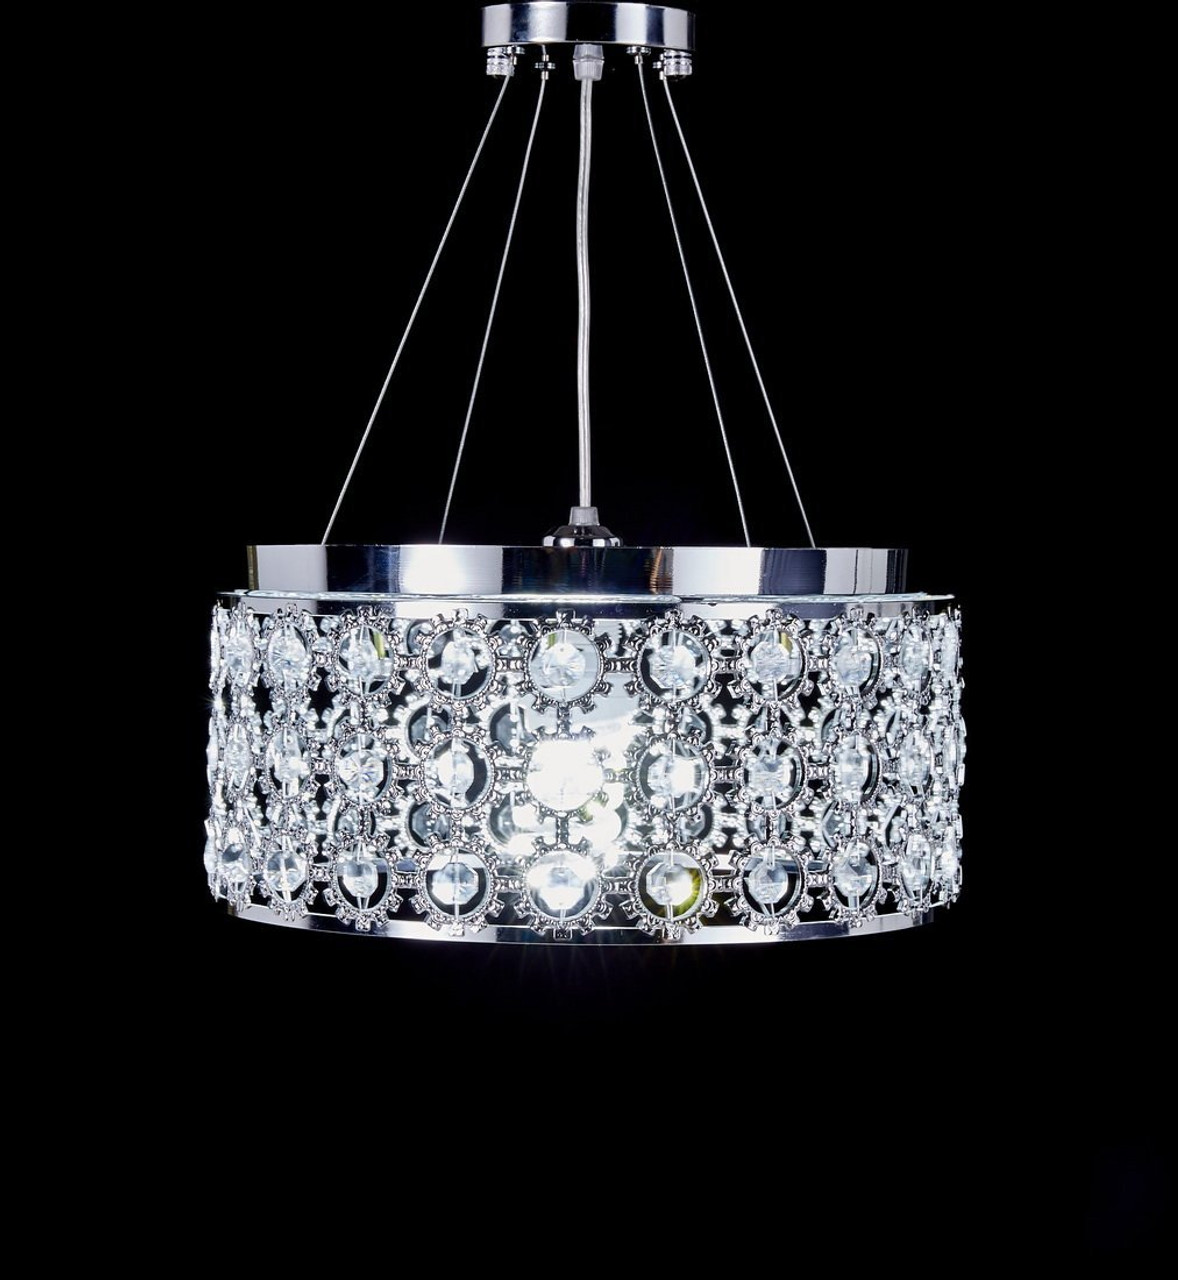 stylish chandelier fixtures home crystal regard hanging to regarding incredible household lighting spiral with for prepare modern present residence luxury pendant lamp